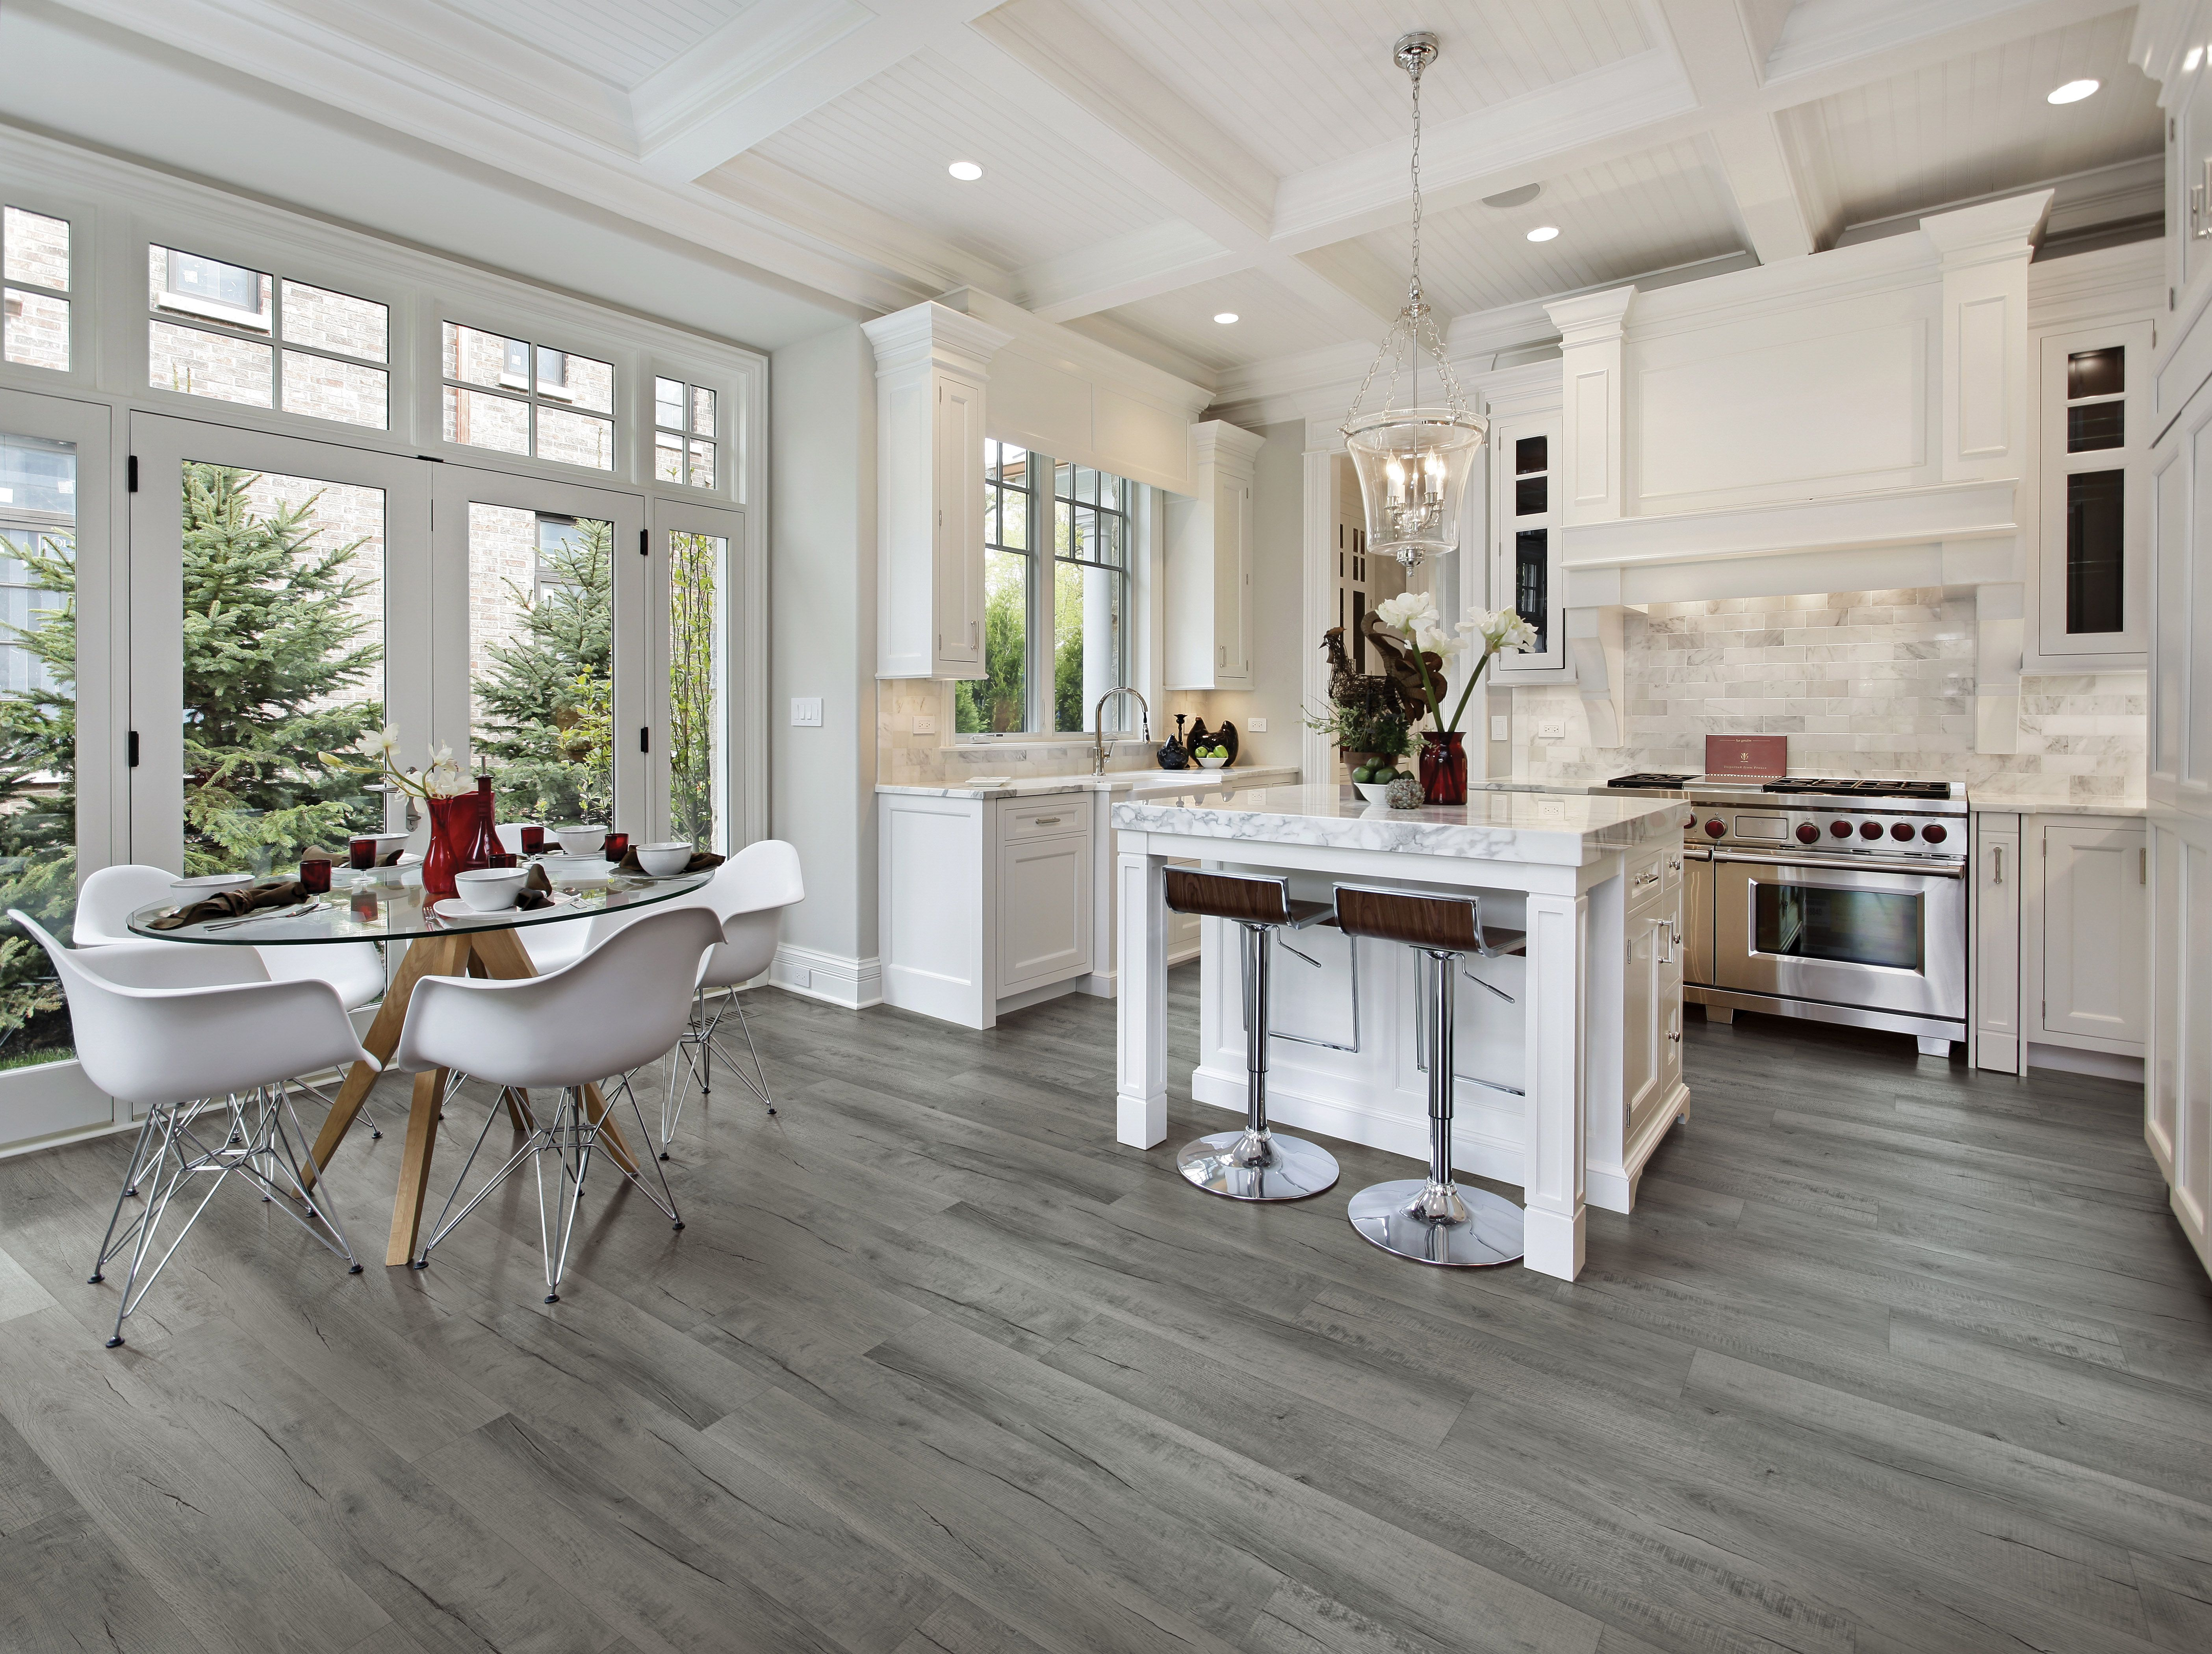 Stainmaster Pet Protect Luxury Vinyl Tile Lvt Lvp Plank Exposed